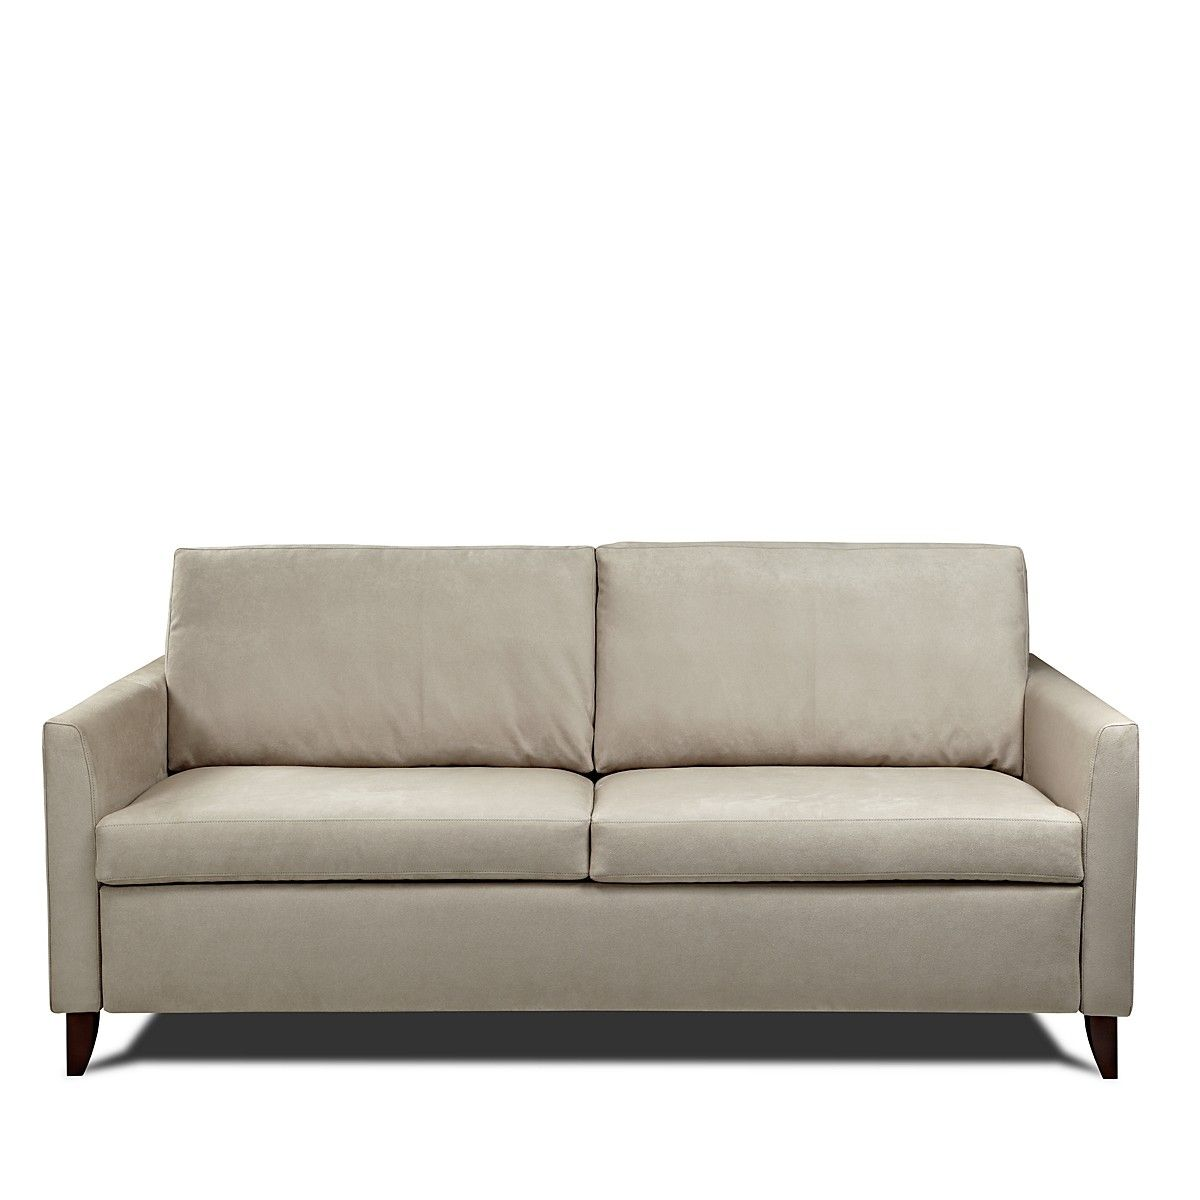 American Leather Hannah Queen Sleeper Sofa Bloomingdale